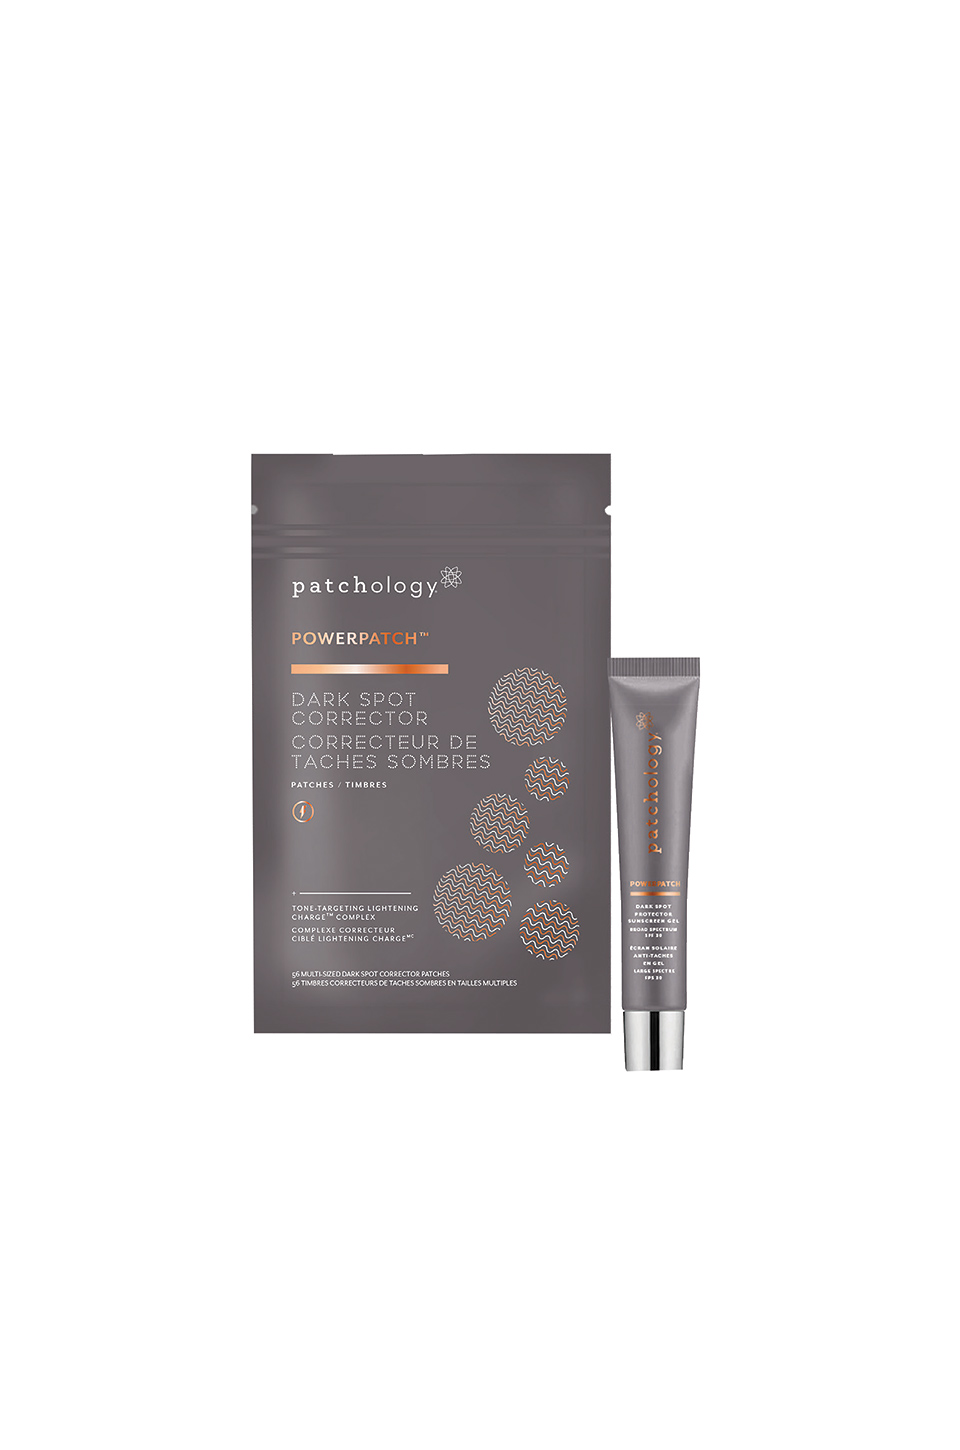 Patchology PowerPatch Dark Spot Corrector Patches in